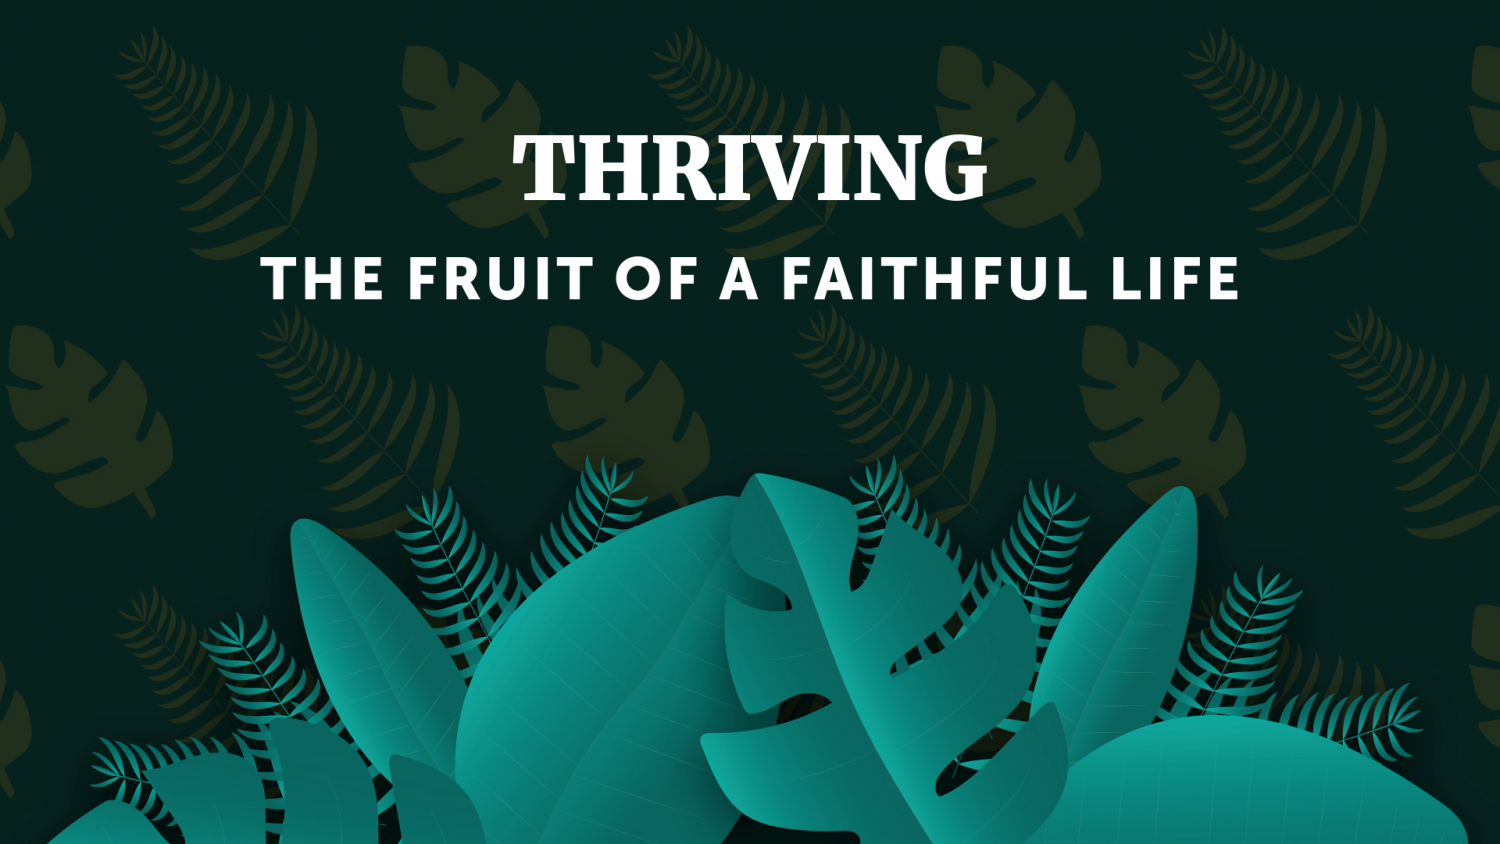 Thriving: The Fruit of a Faithful Life